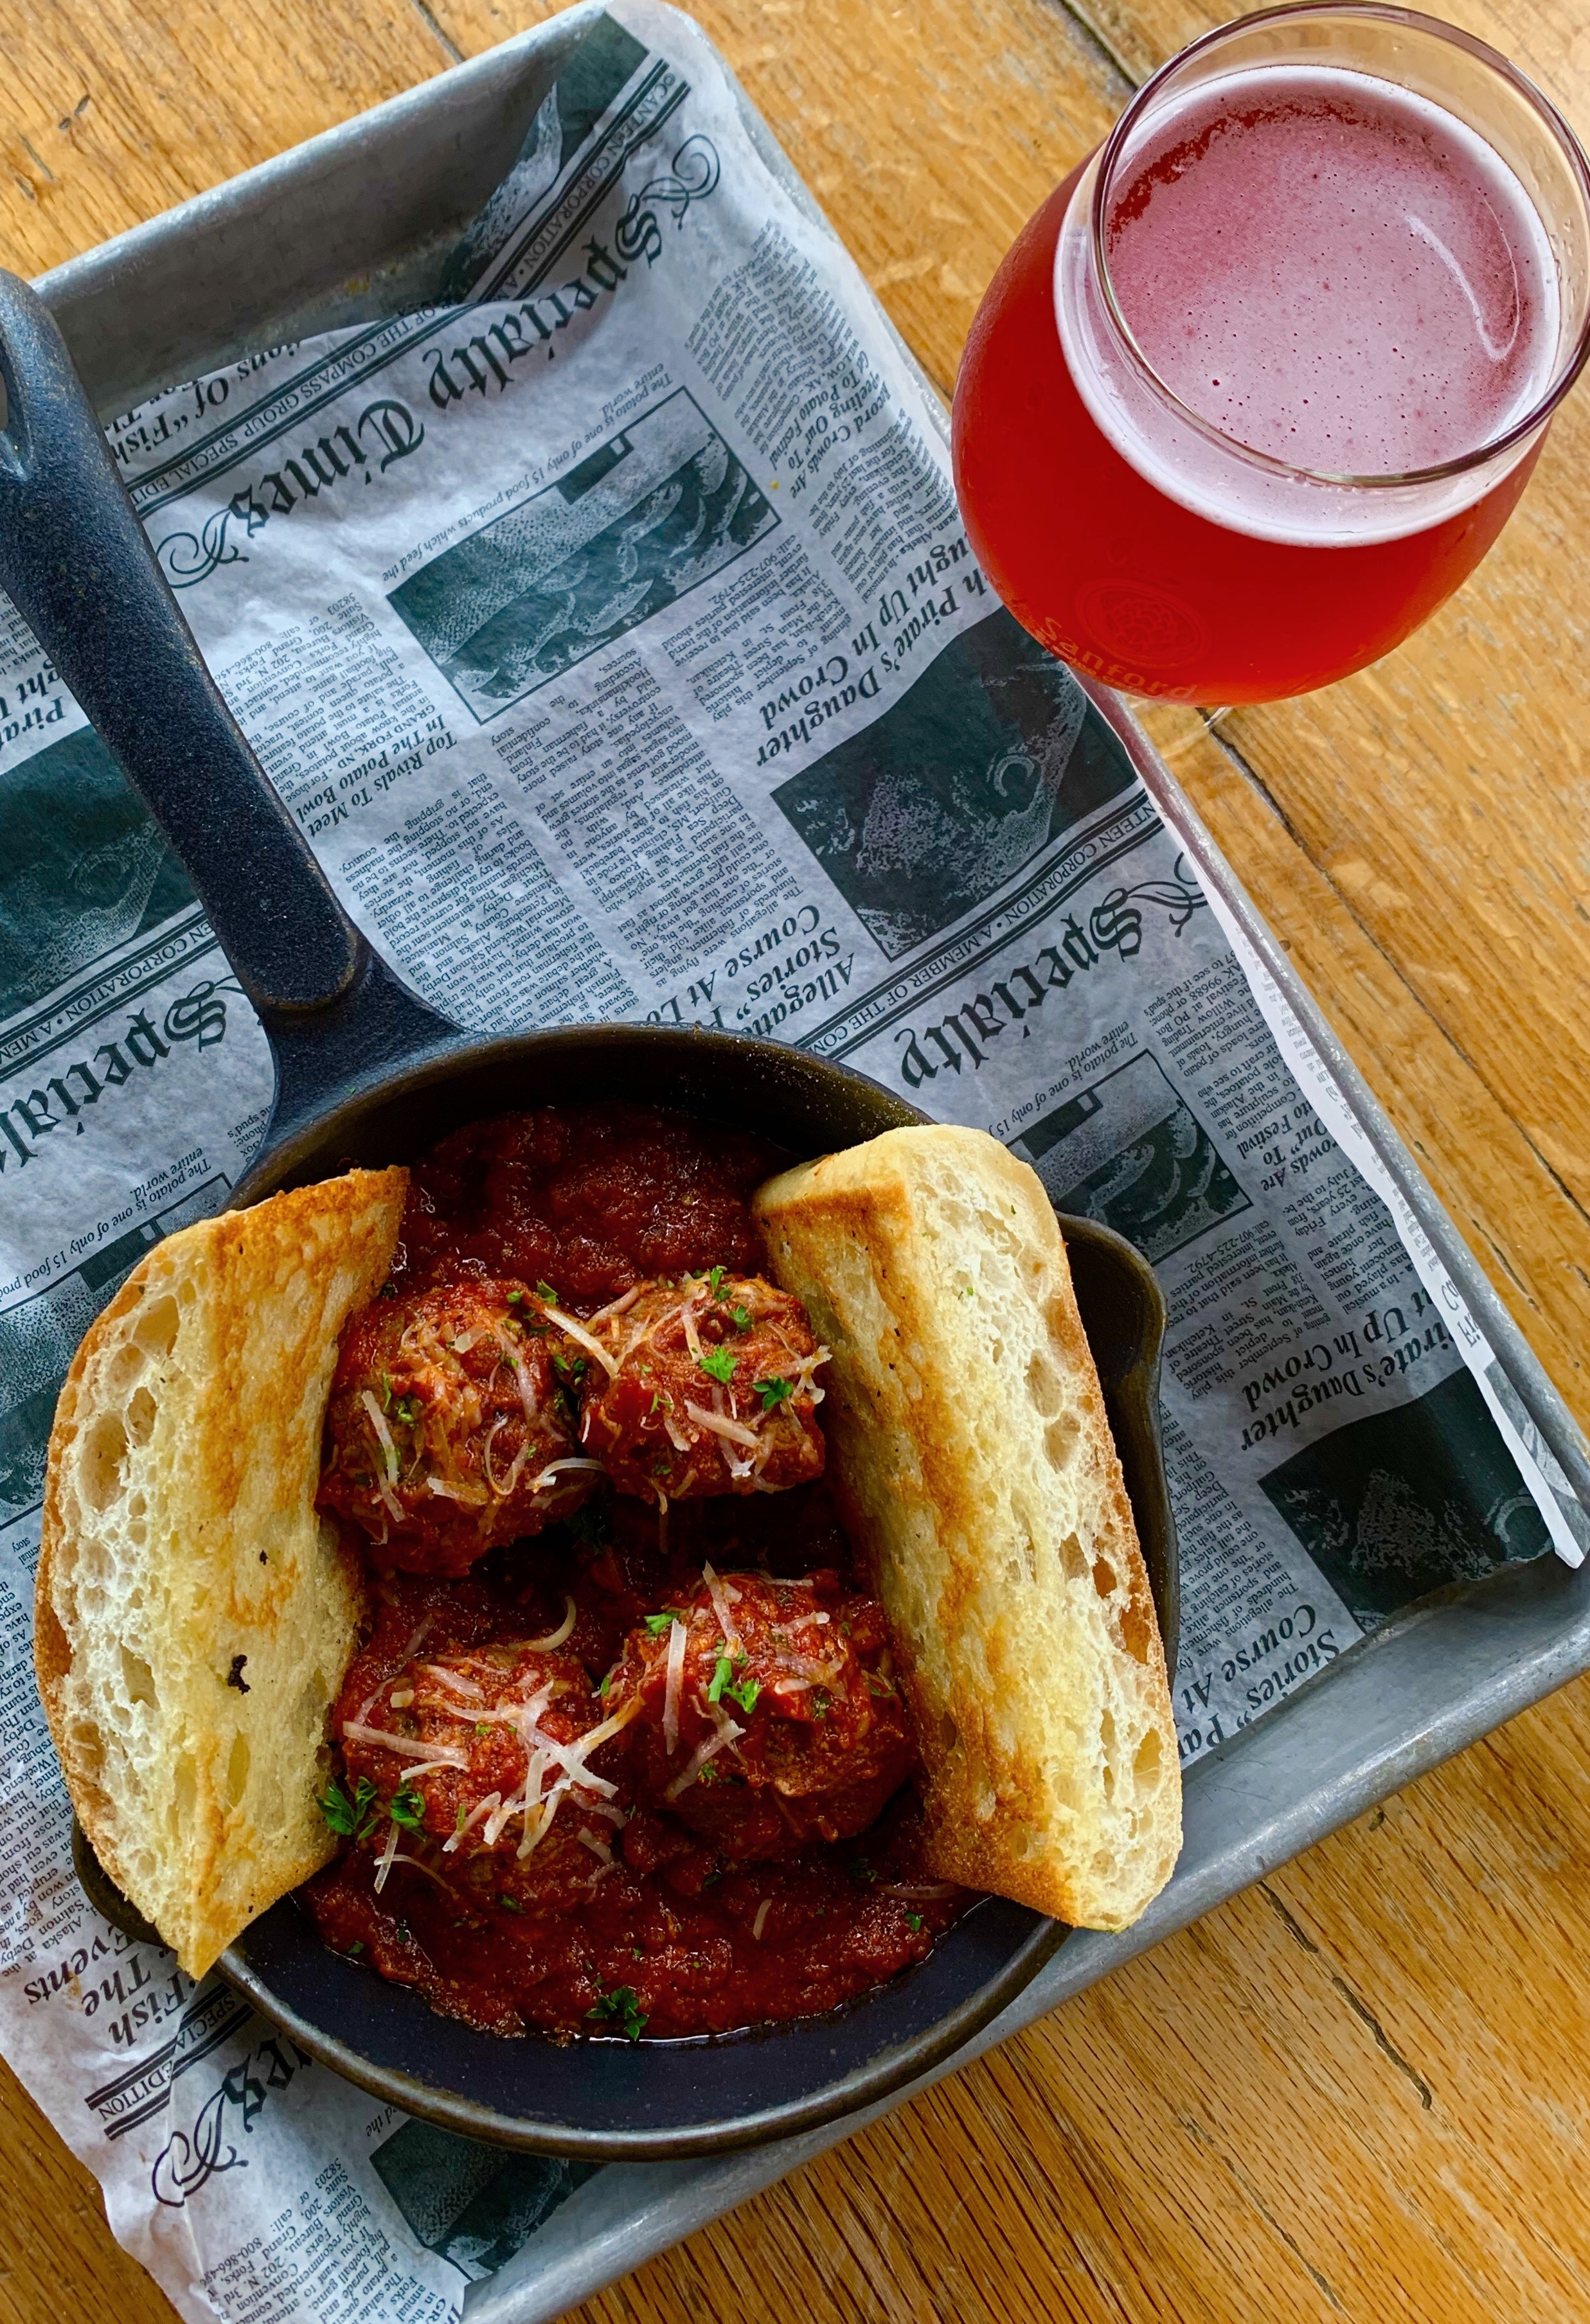 Nonno's Meatballs and a Flamingose